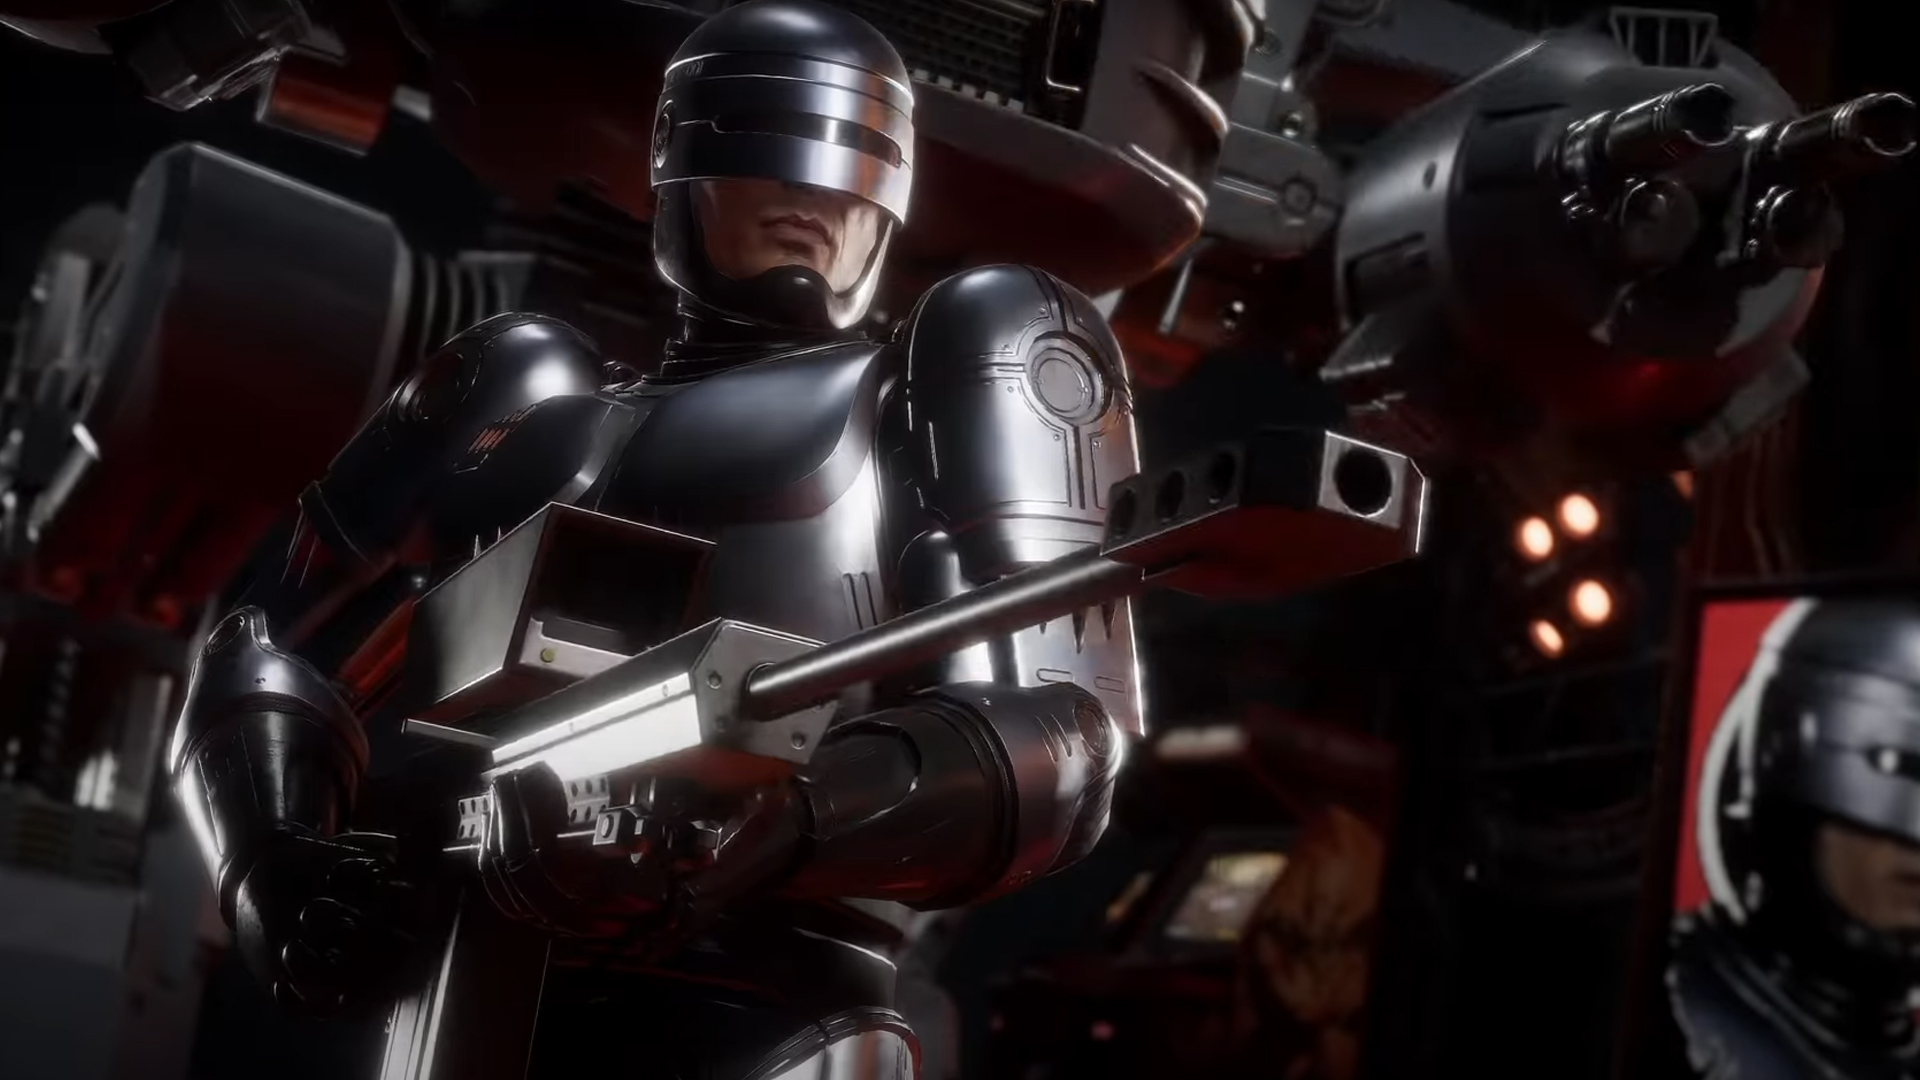 Mortal Kombat 11: Aftermath Gets New RoboCop Vs Terminator Trailers